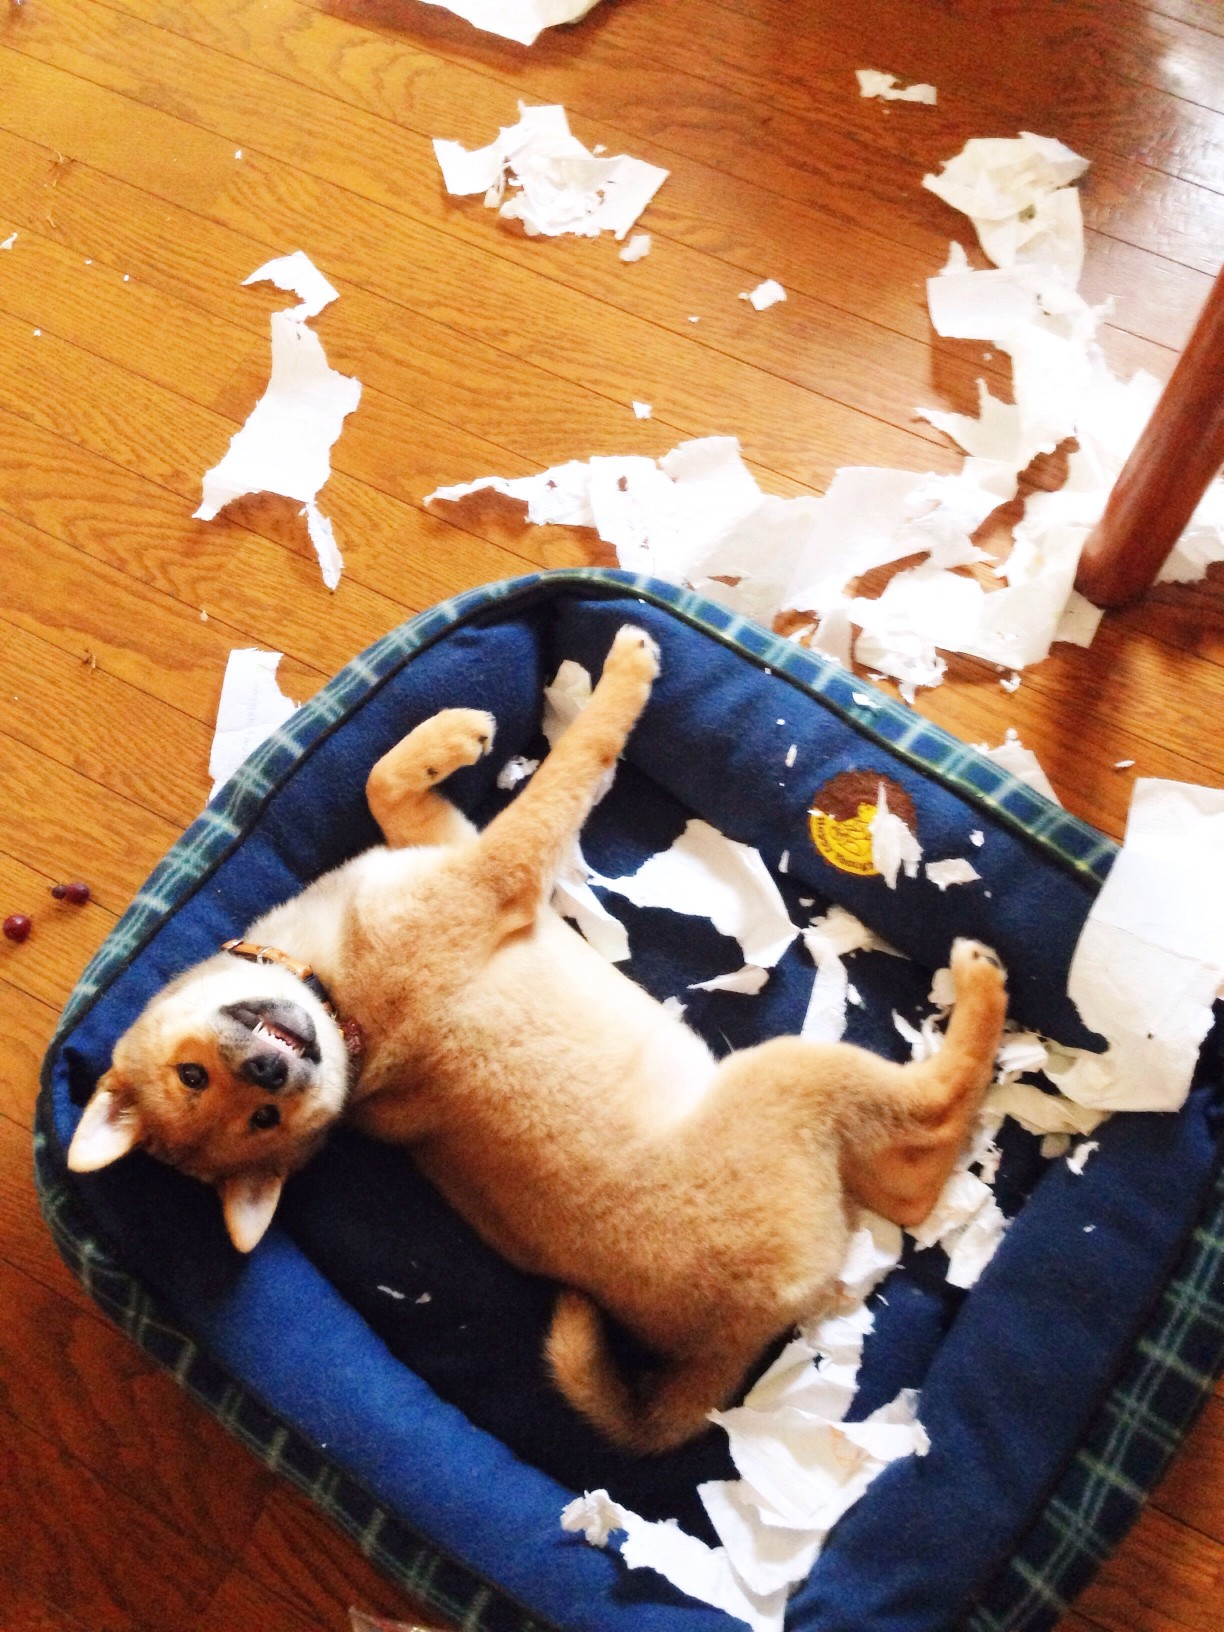 dog anxiety manifested in destruction